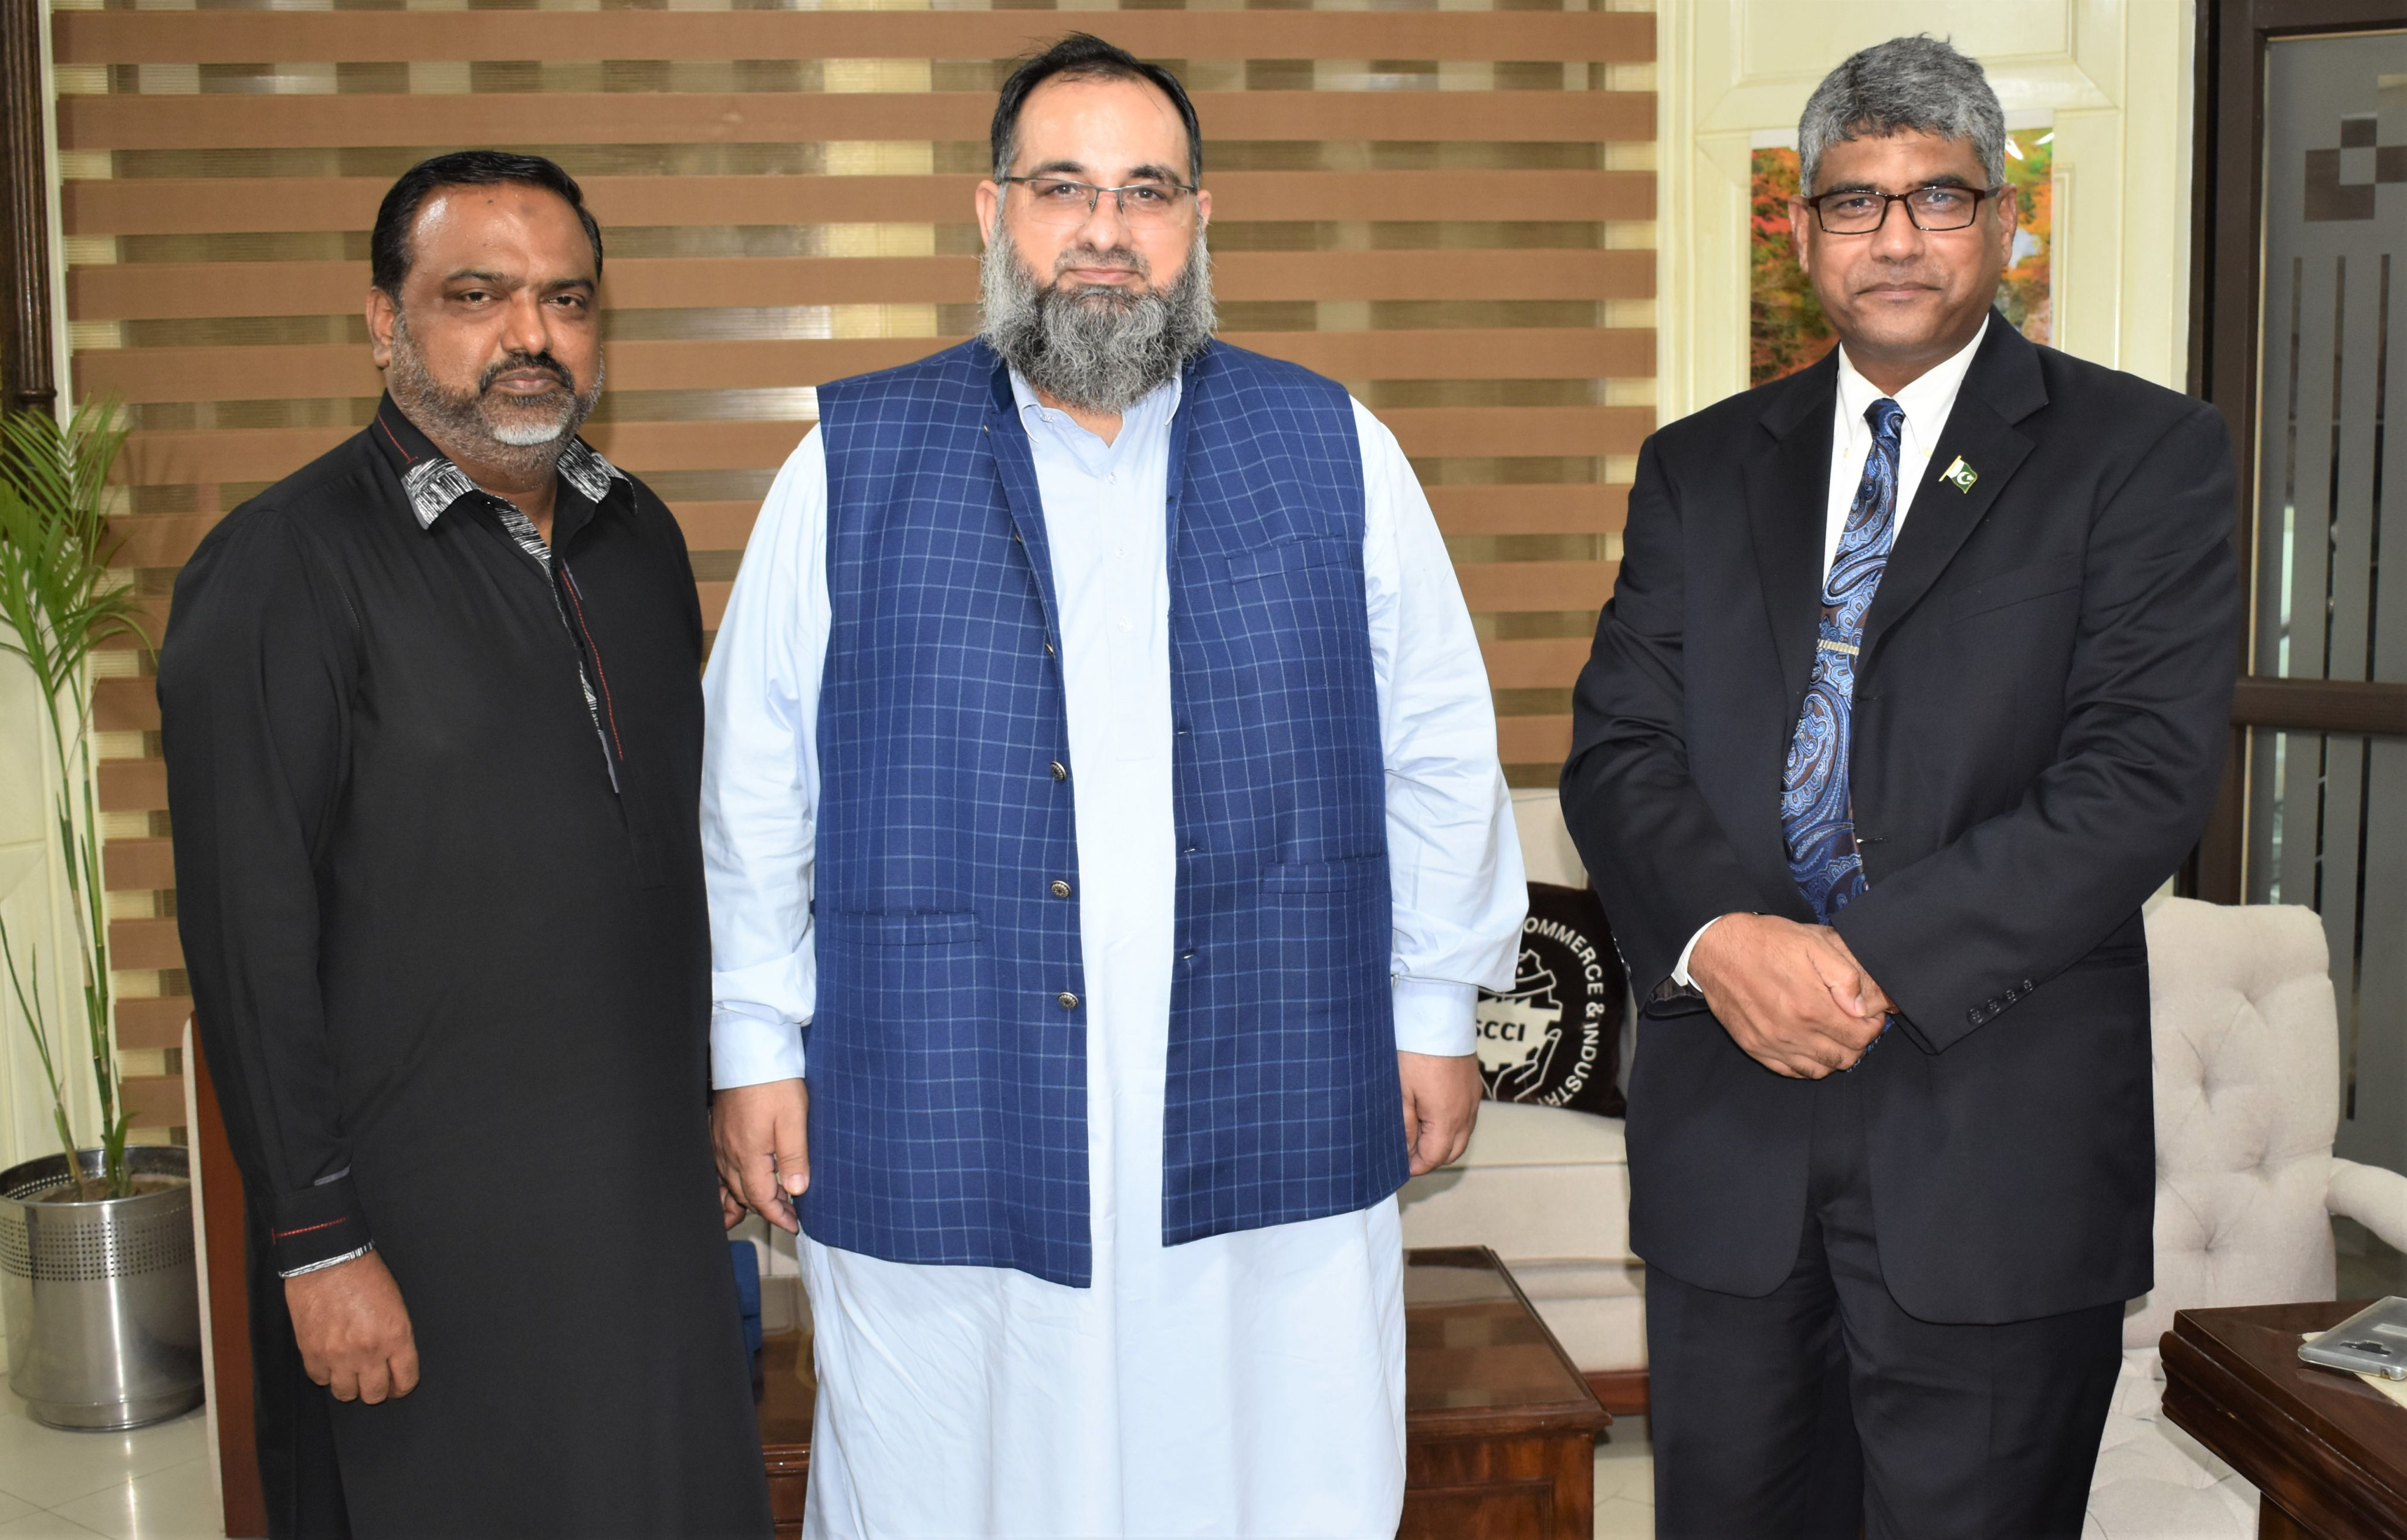 On September 17, 2021, A delegation of Employees' Old-Age Benefits Institution (EOBI) Sialkot visited Sialkot Chamber of Commerce & Industry and had meeting with Mr. Khuram Aslam, Senior Vice President, SCCI to discuss matters of mutual interest.